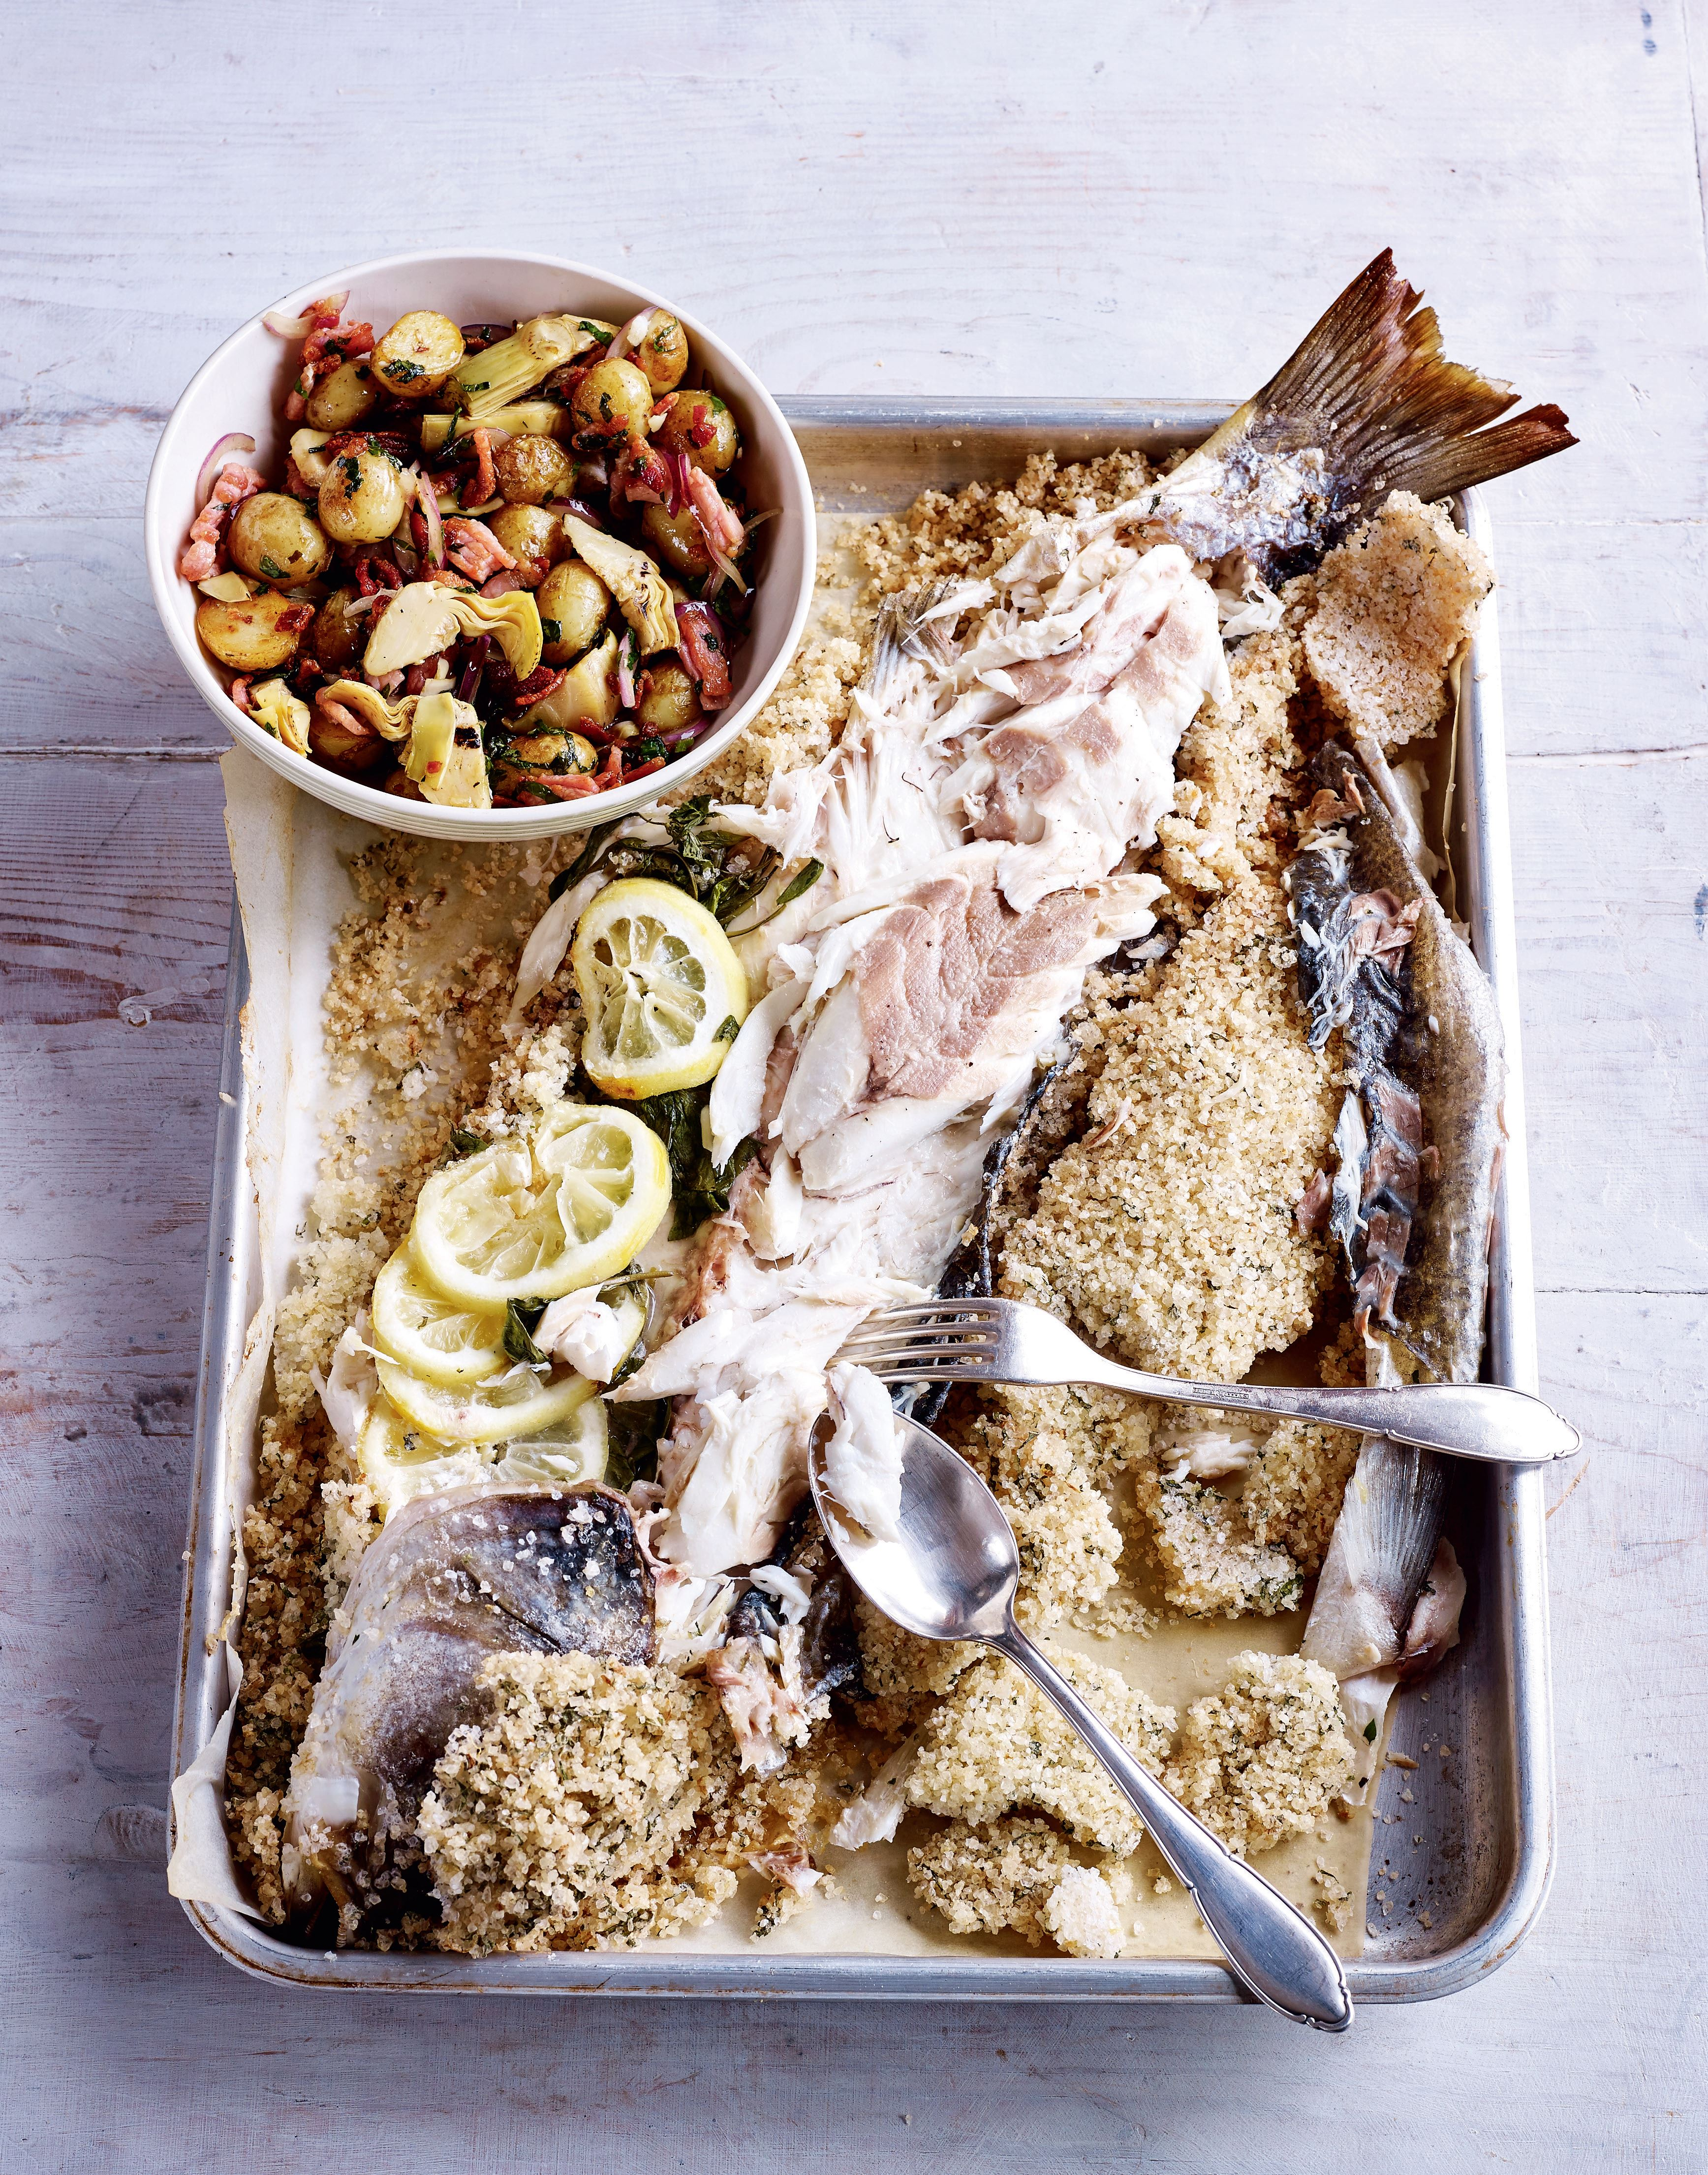 Salt baked sea bass with warm artichoke and bacon salad